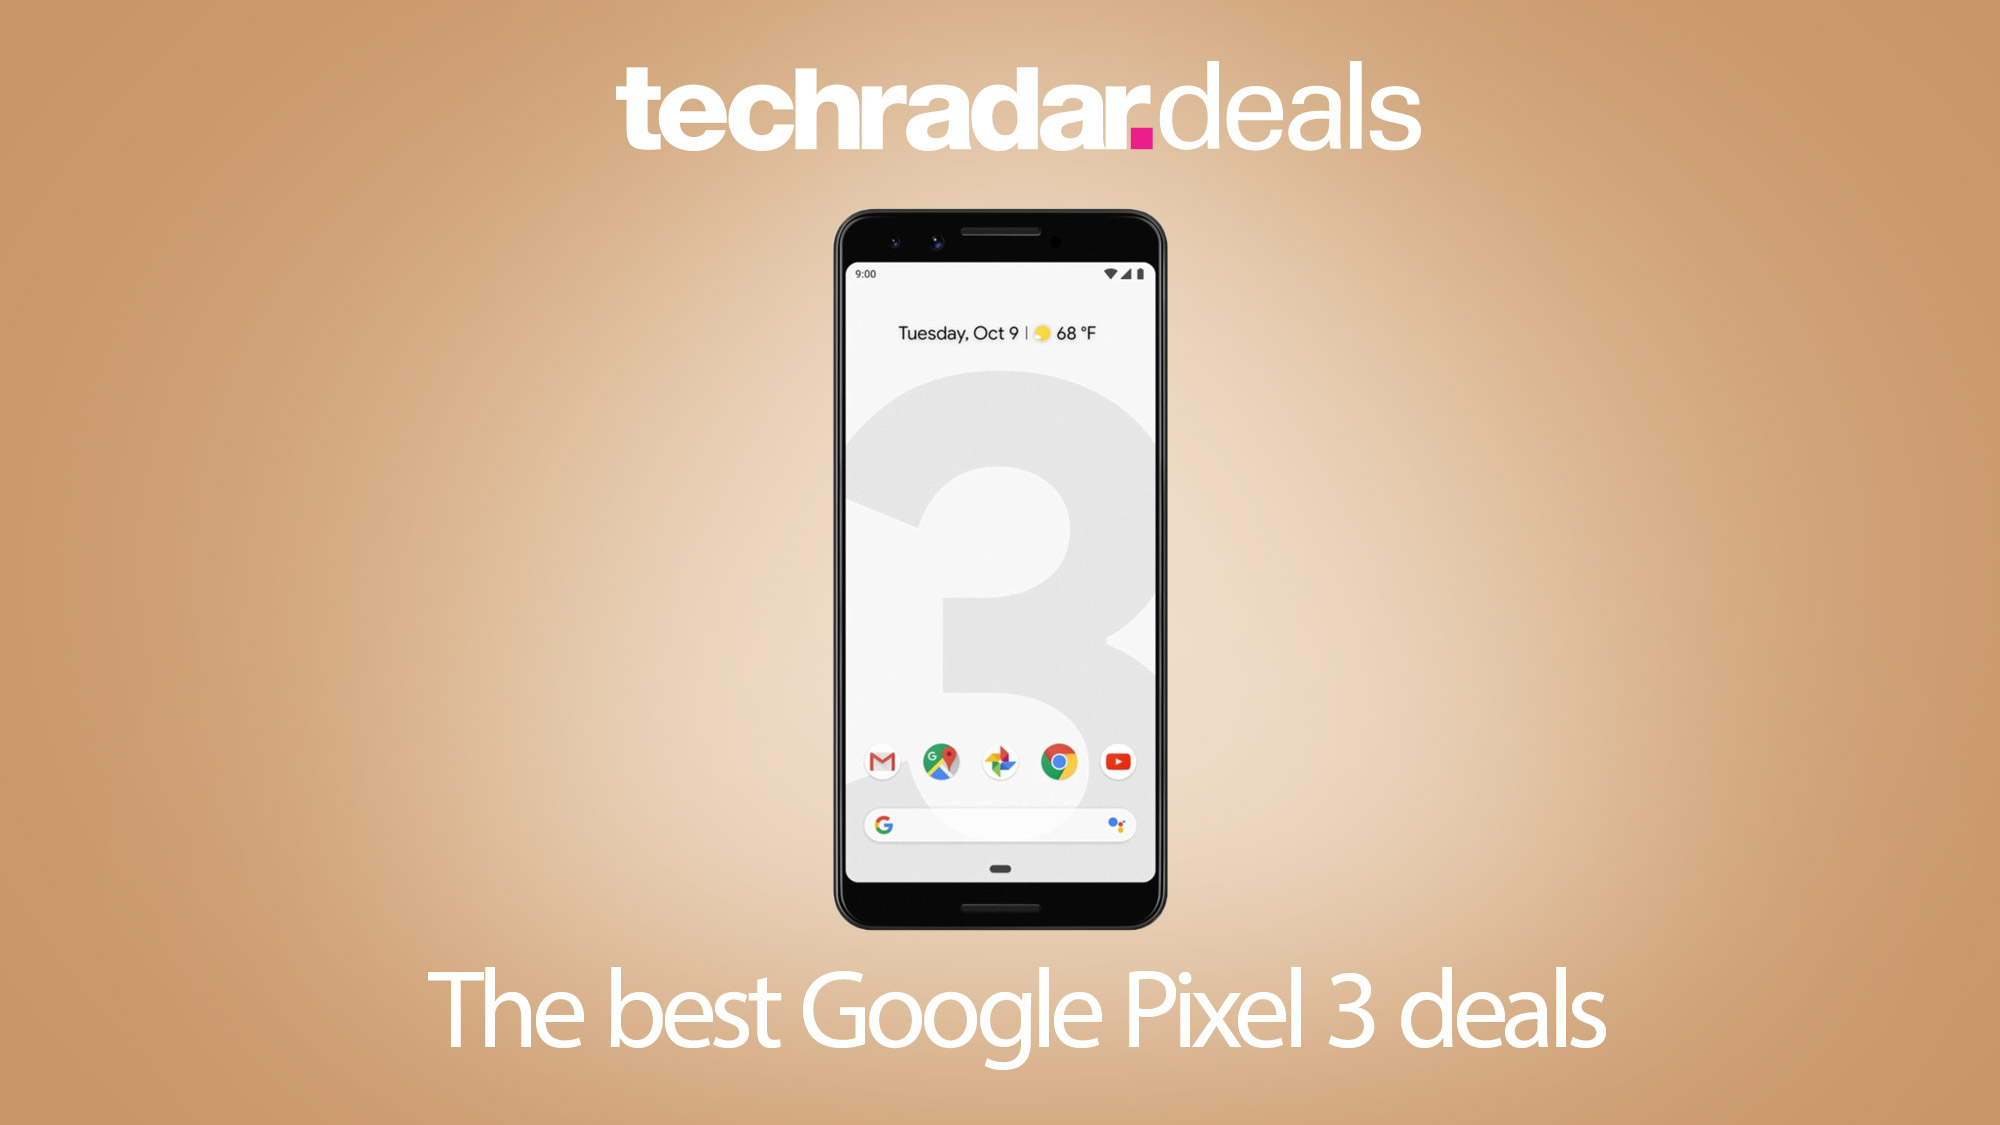 The best Google Pixel 3 and 3 XL deals in September 2019